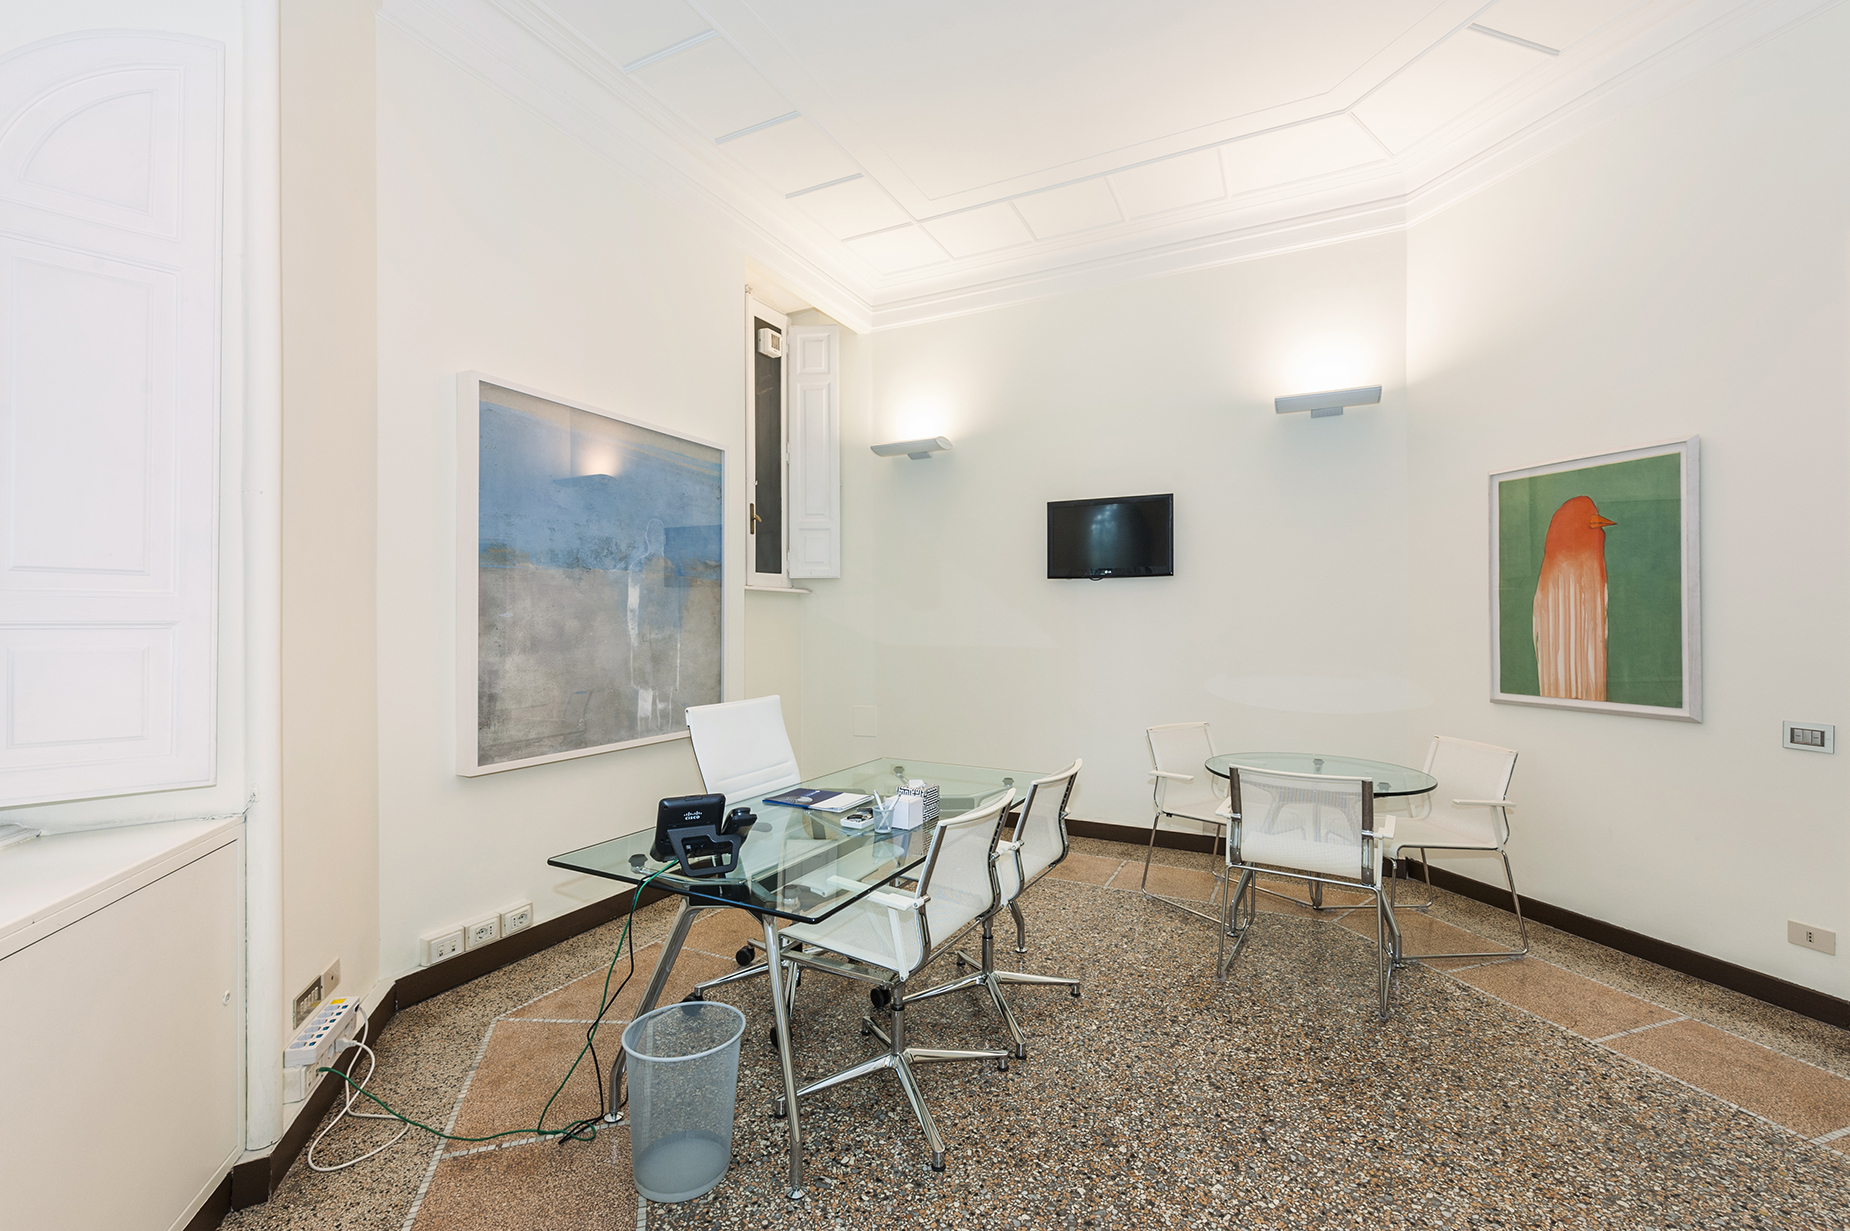 Additional photo for property listing at High prestige office Piazzale delle belle Arti Rome, Roma 00197 Italia